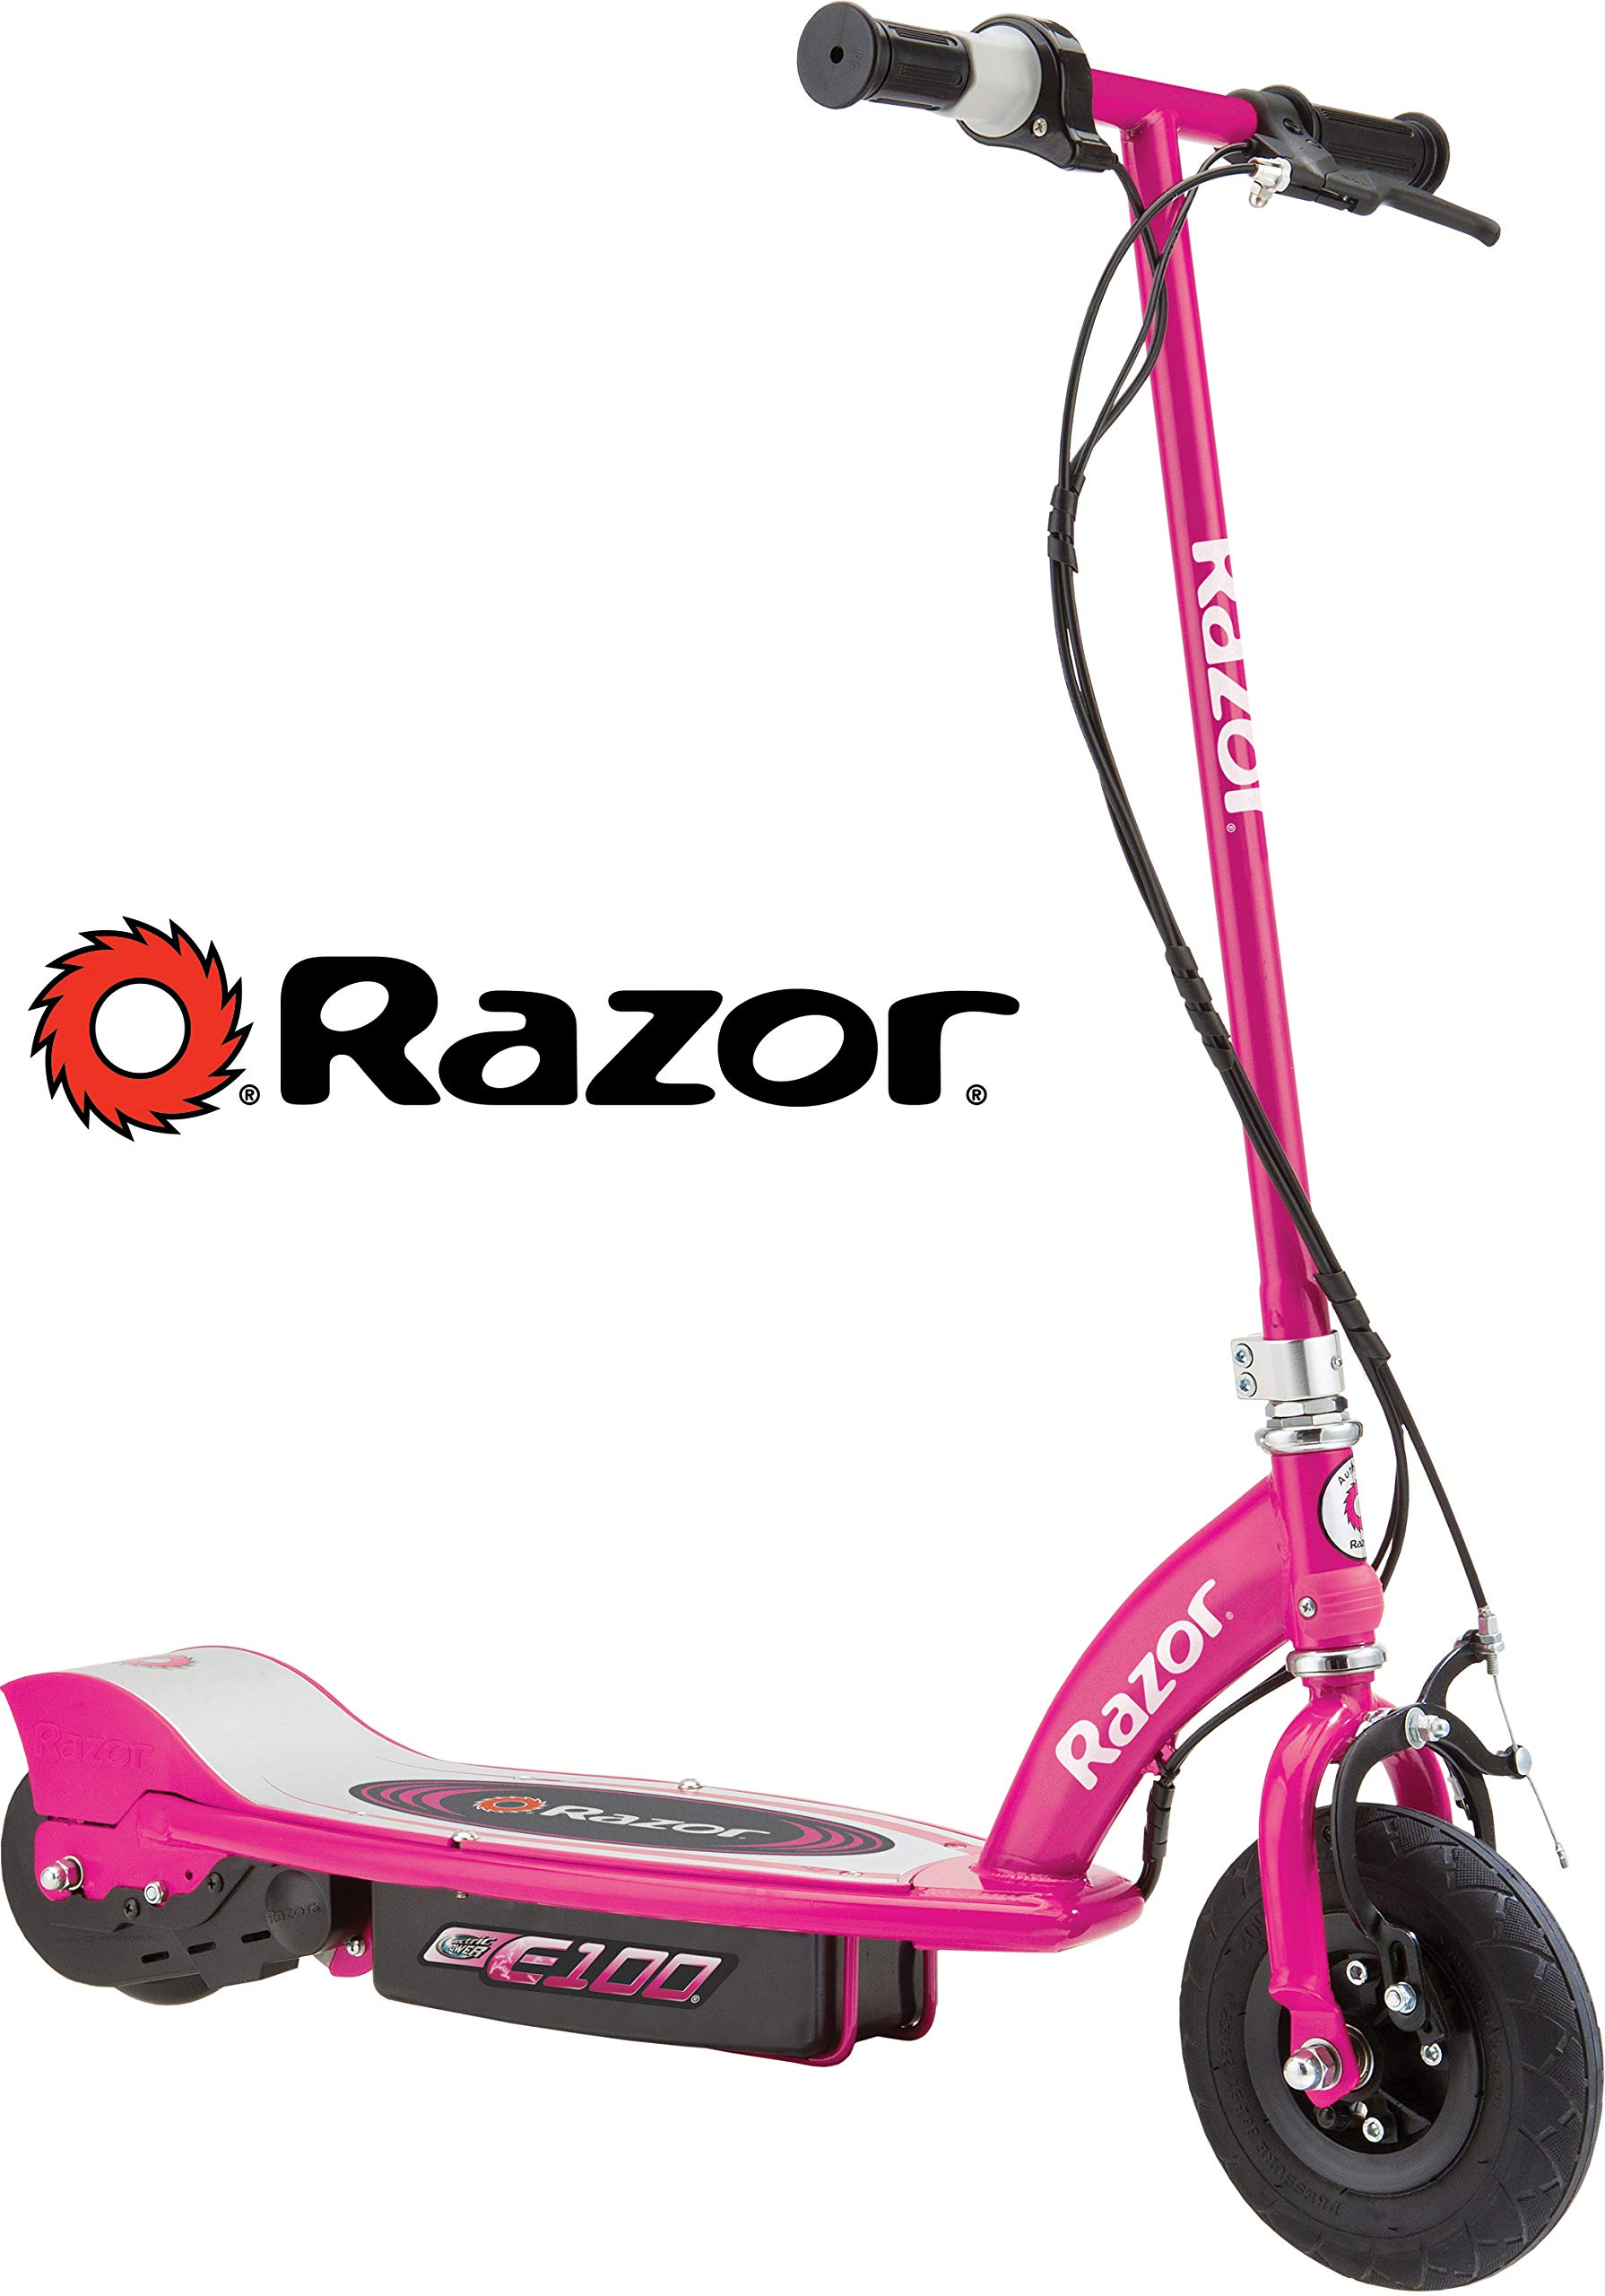 Razor E100 Electric Scooter - Pink by Razor